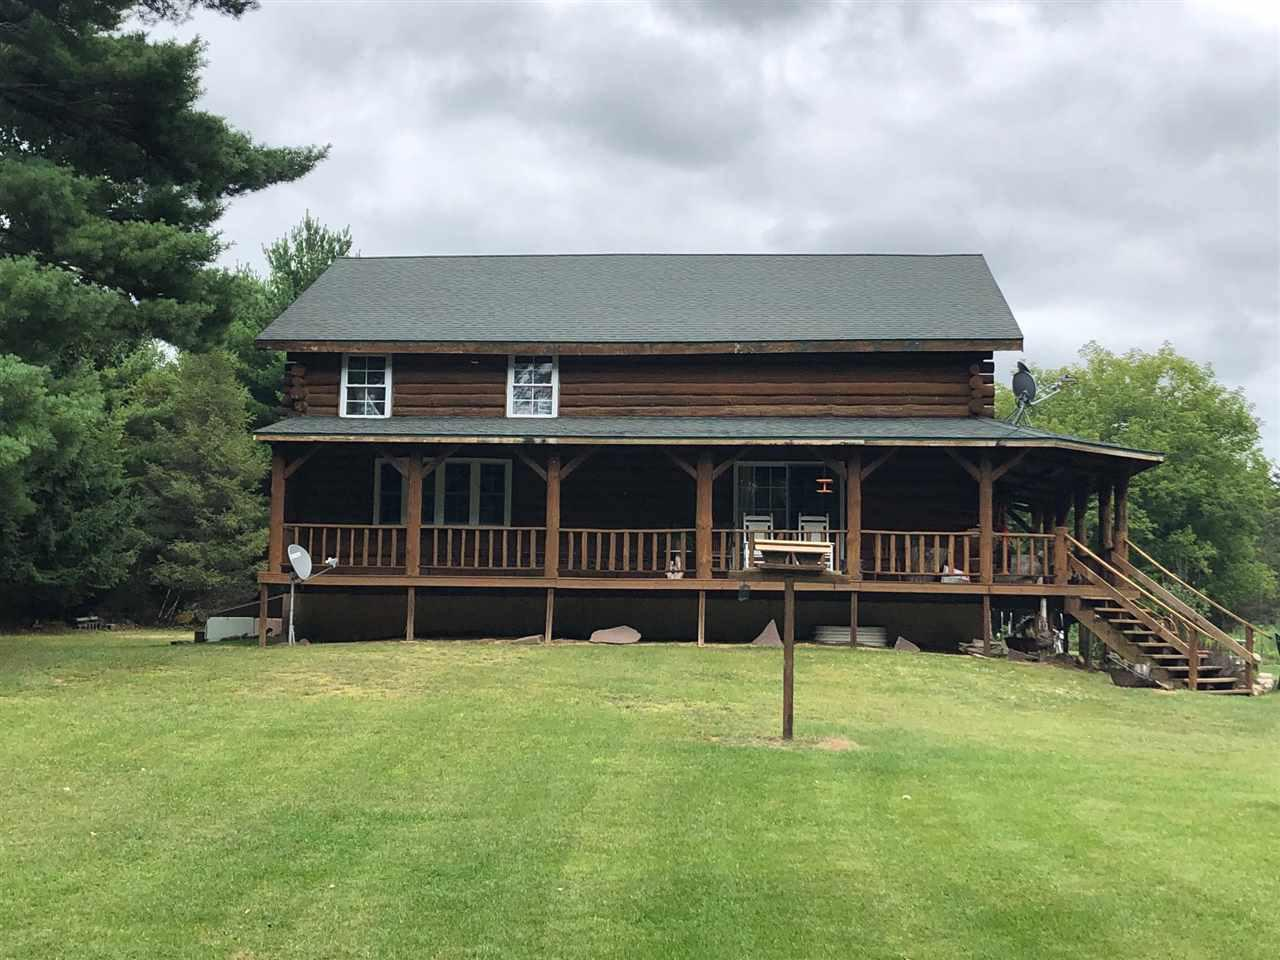 VPR $369,900 to $389,900. 38+-acres ! The amazing log home sits on some of the best hunting land in the area. The kitchen offers loads of custom cabinetry & most appliances are included. Relax on your covered porch overlooking a spring feed pond in your private back yard. Relax in your large master bedroom made complete with plenty of closet space & a large bathroom just steps away. Bring your horses! This property is set up great for keeping horses. Additional acreage & buildings including are barn can be included for additional cost. Call for  details or to set up a private tour.